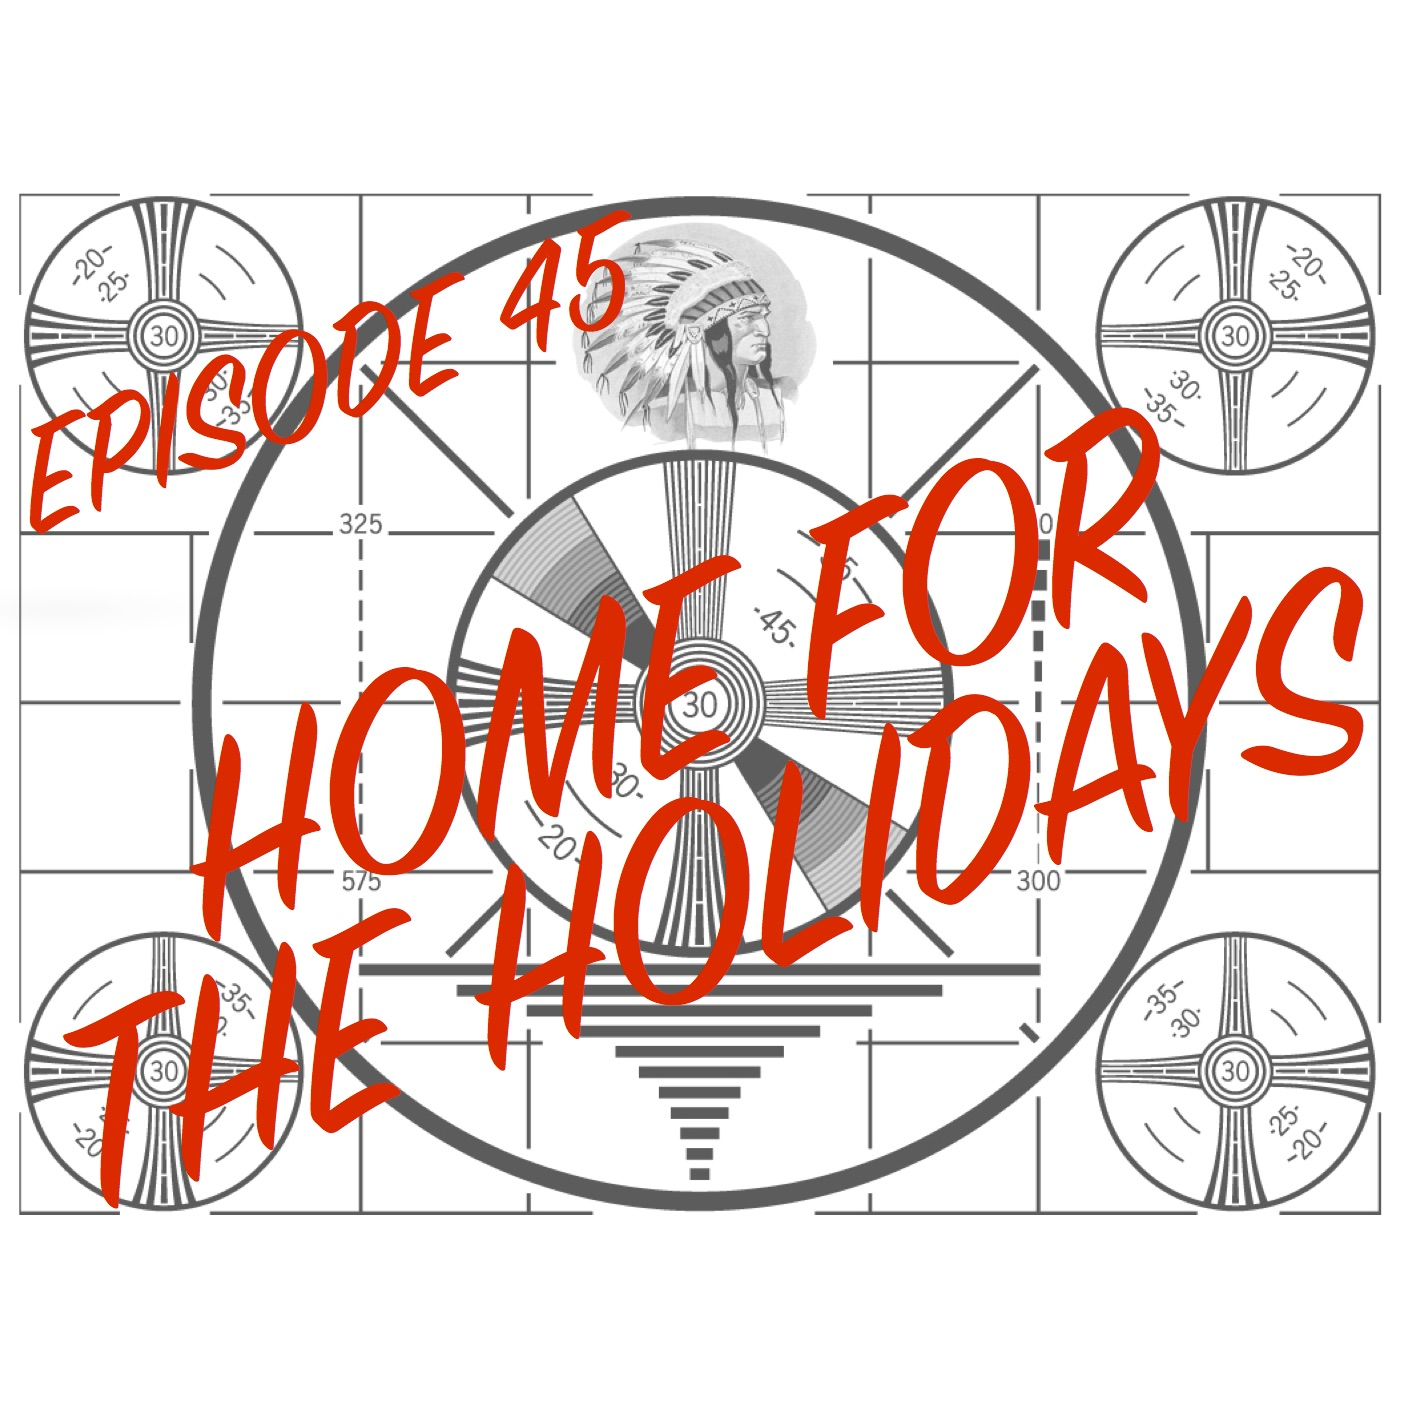 Episode 45 - Home for the Holidays